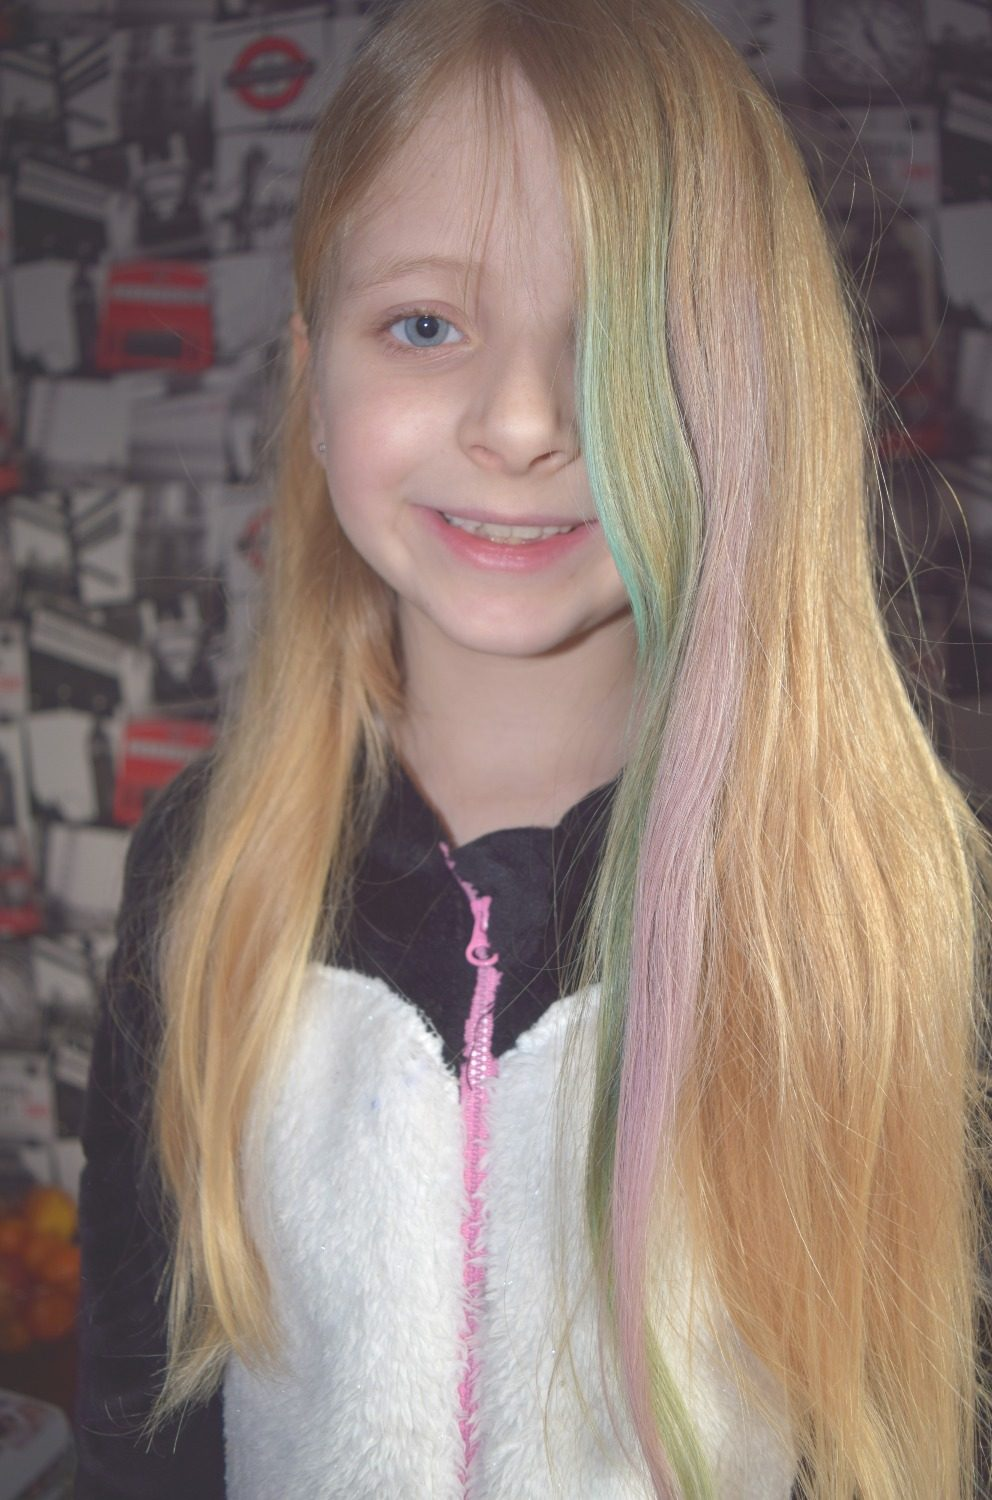 Caitlin with more hair chalk